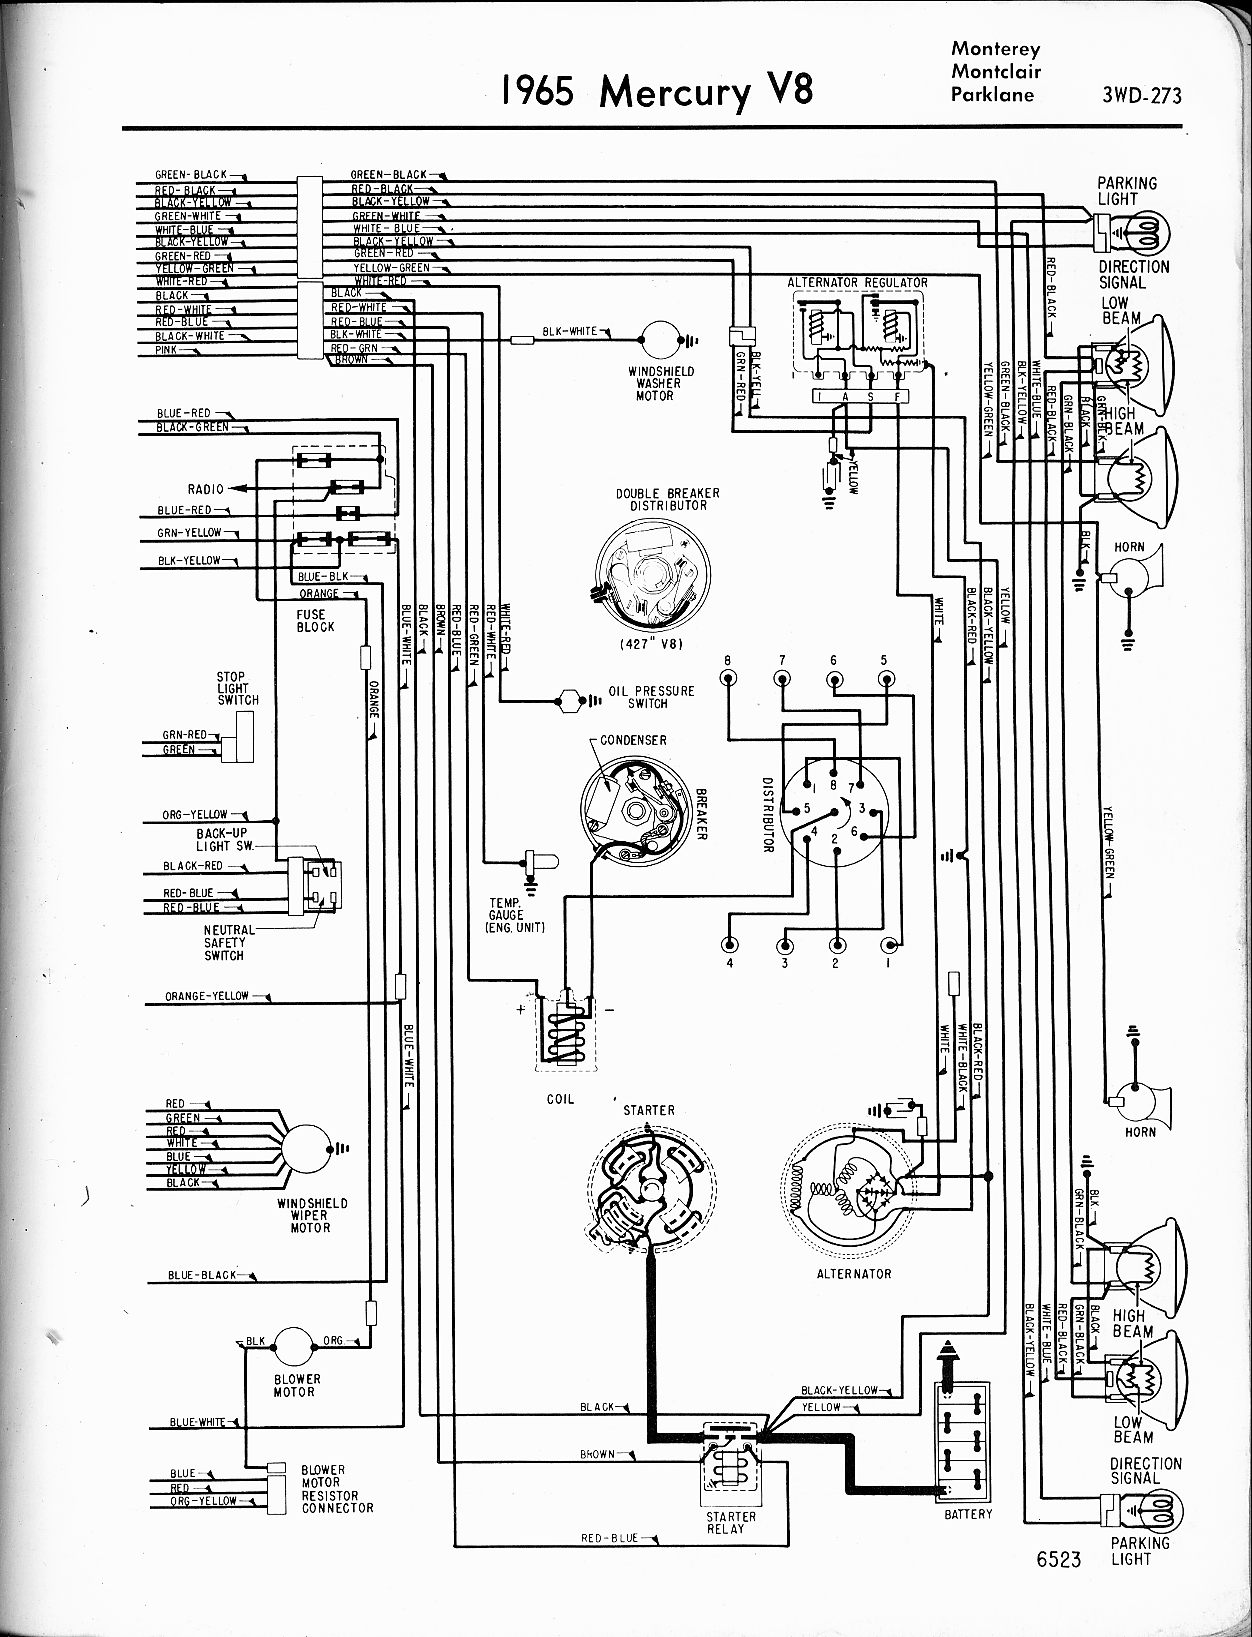 94 Cougar Engine Diagram on ford tempo alternator wiring